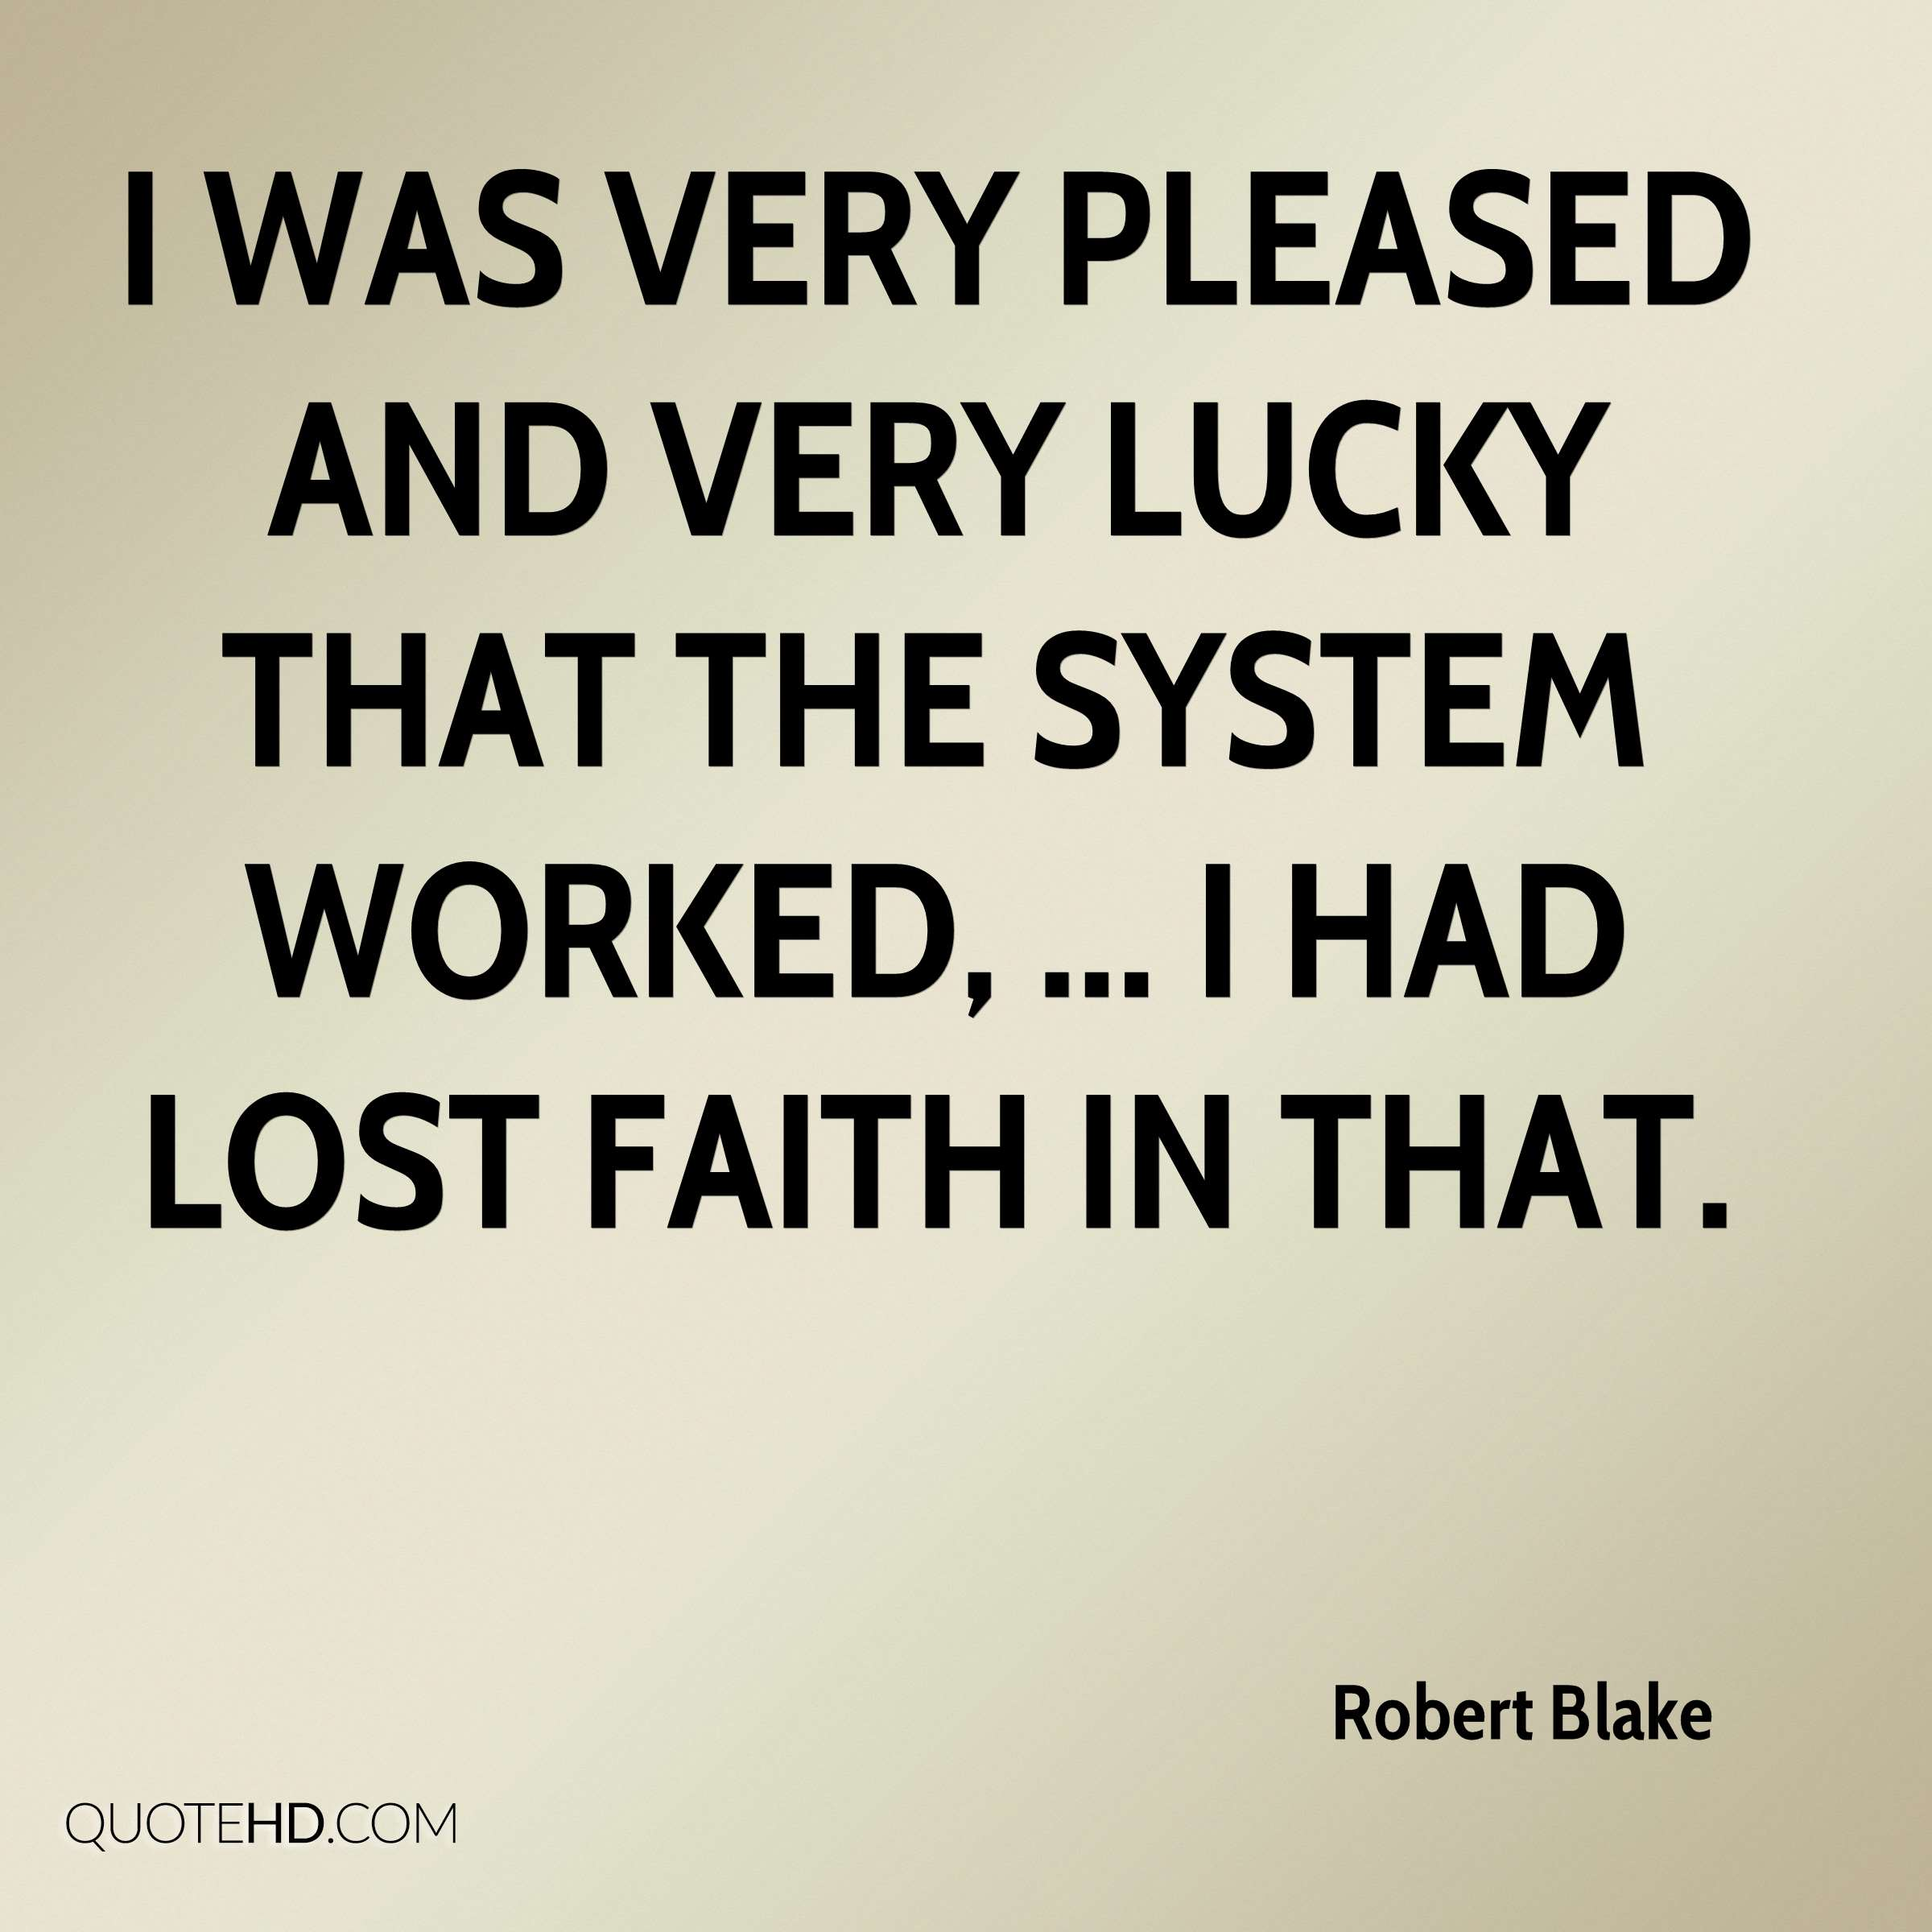 I was very pleased and very lucky that the system worked, ... I had lost faith in that.